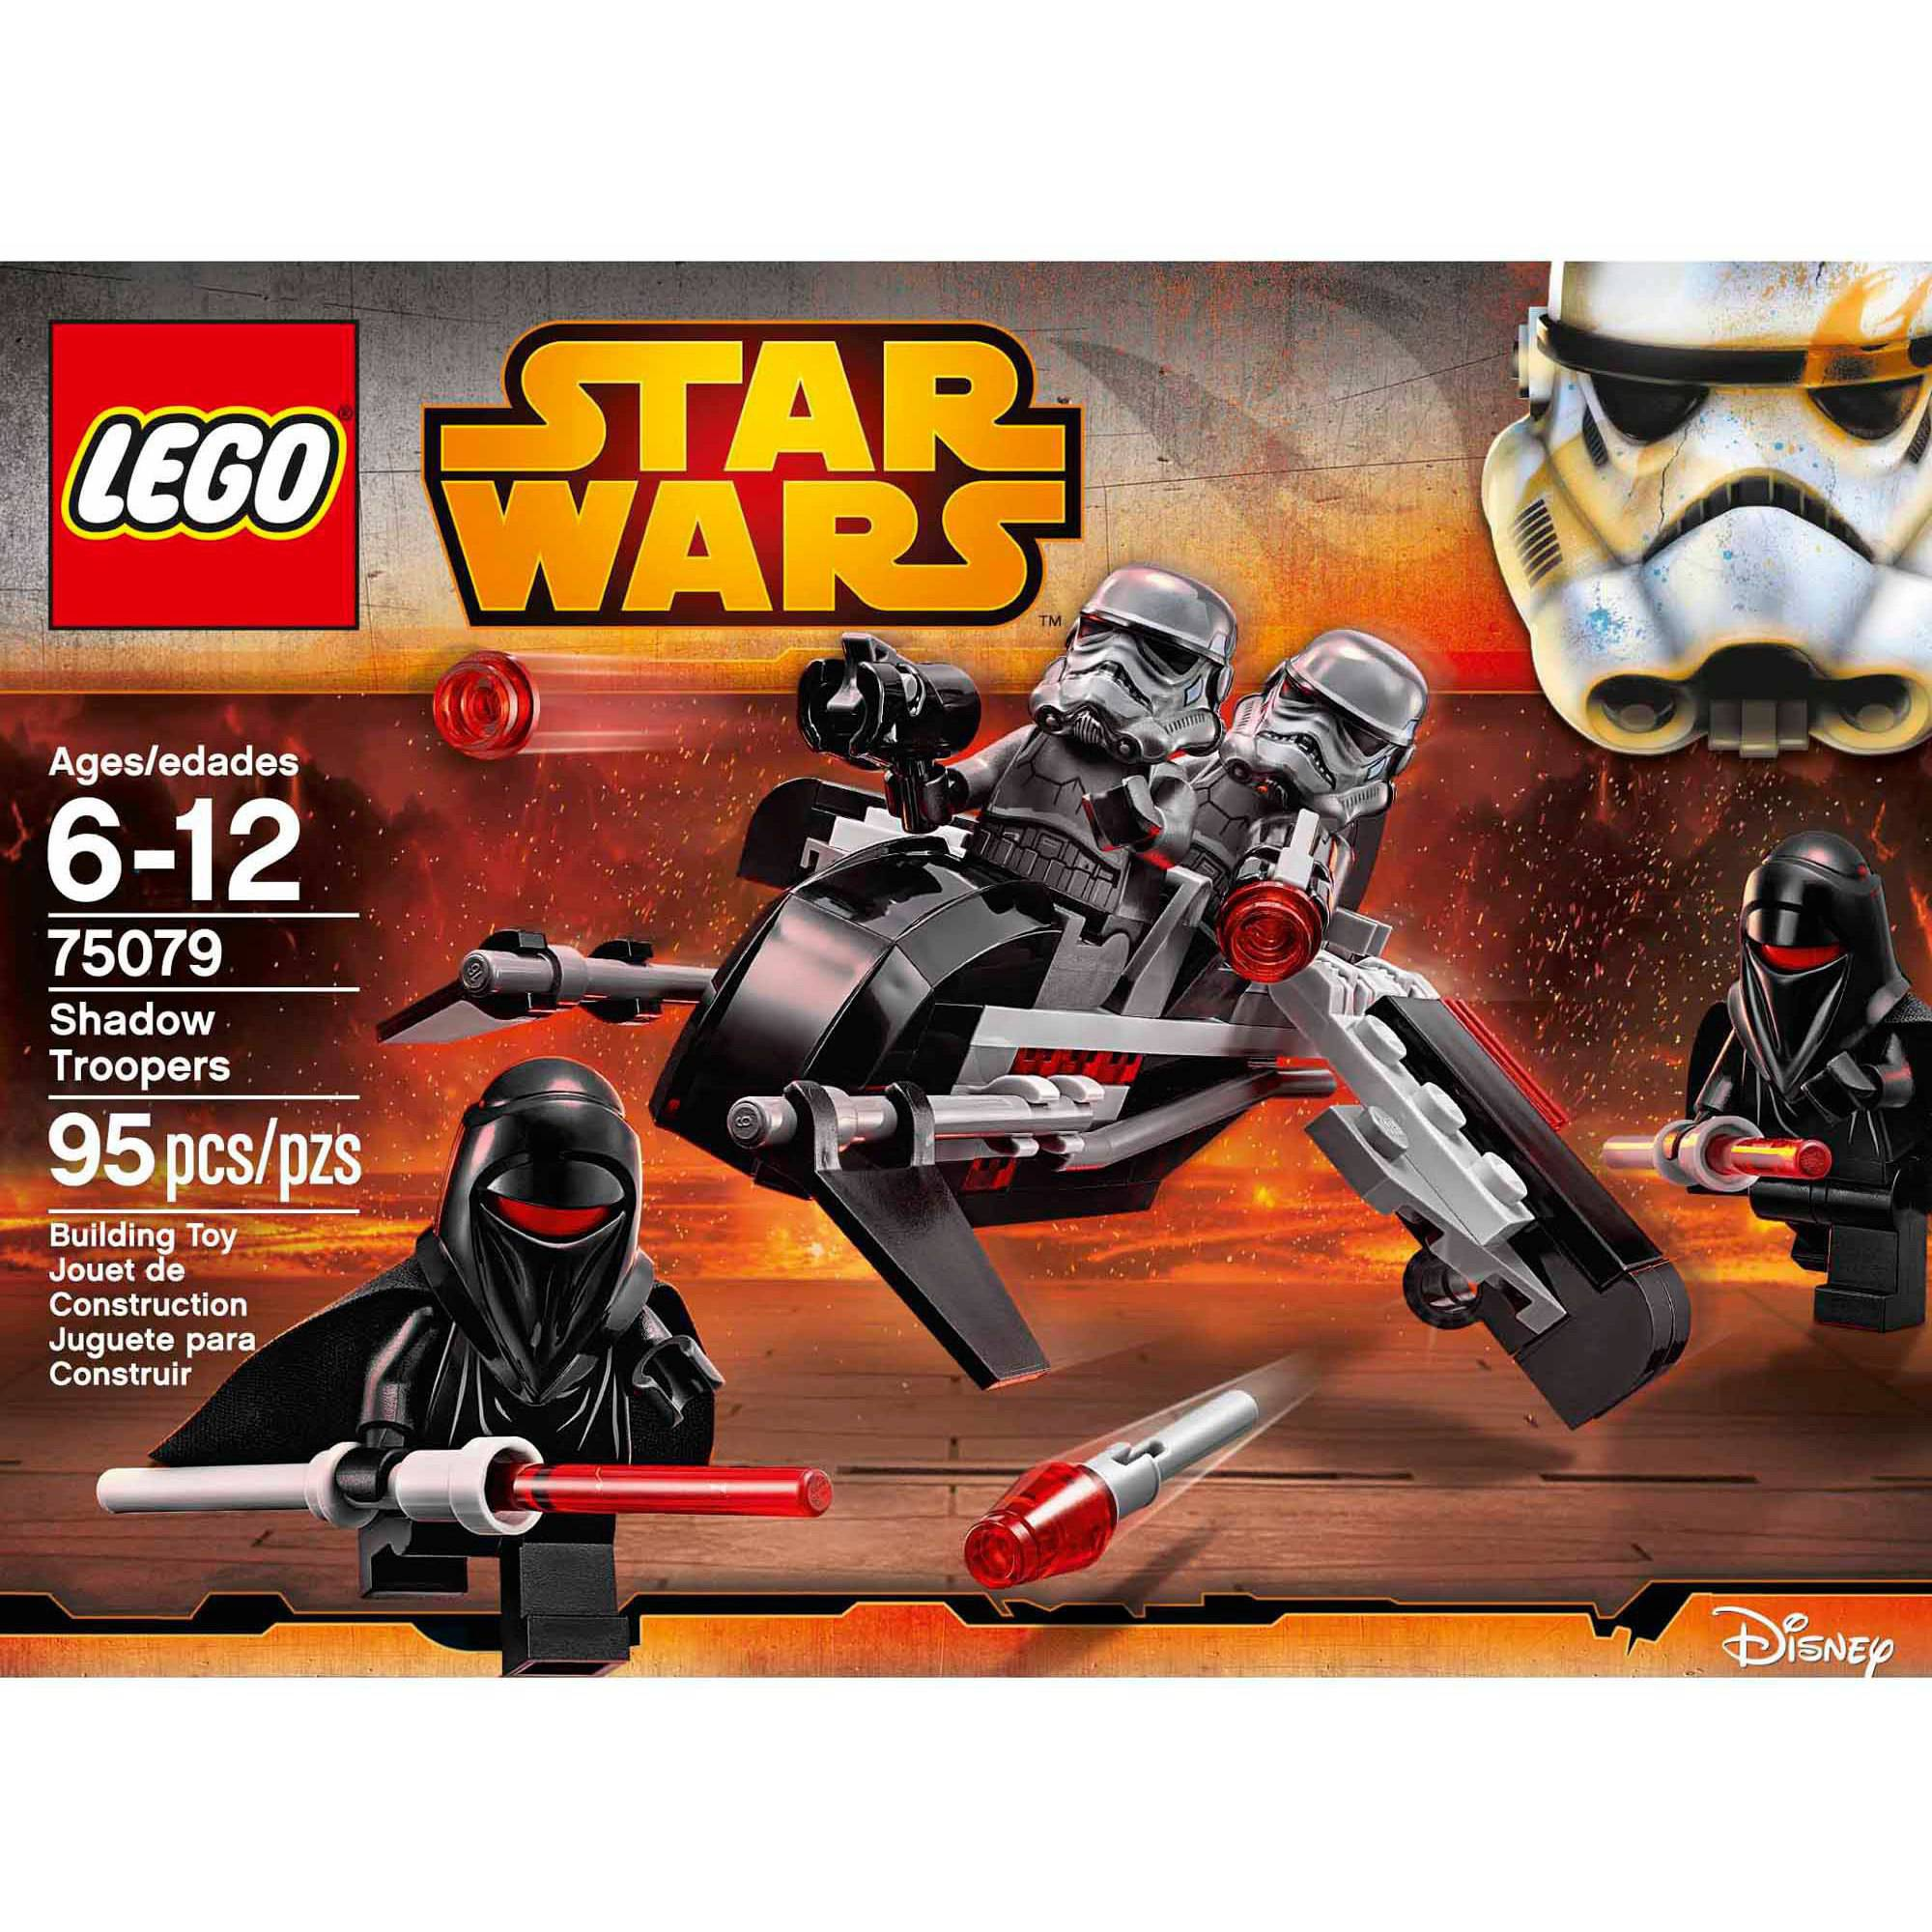 LEGO Star Wars Shadow Troopers 95 Pieces NEW 75079 retired 4 mini figure set